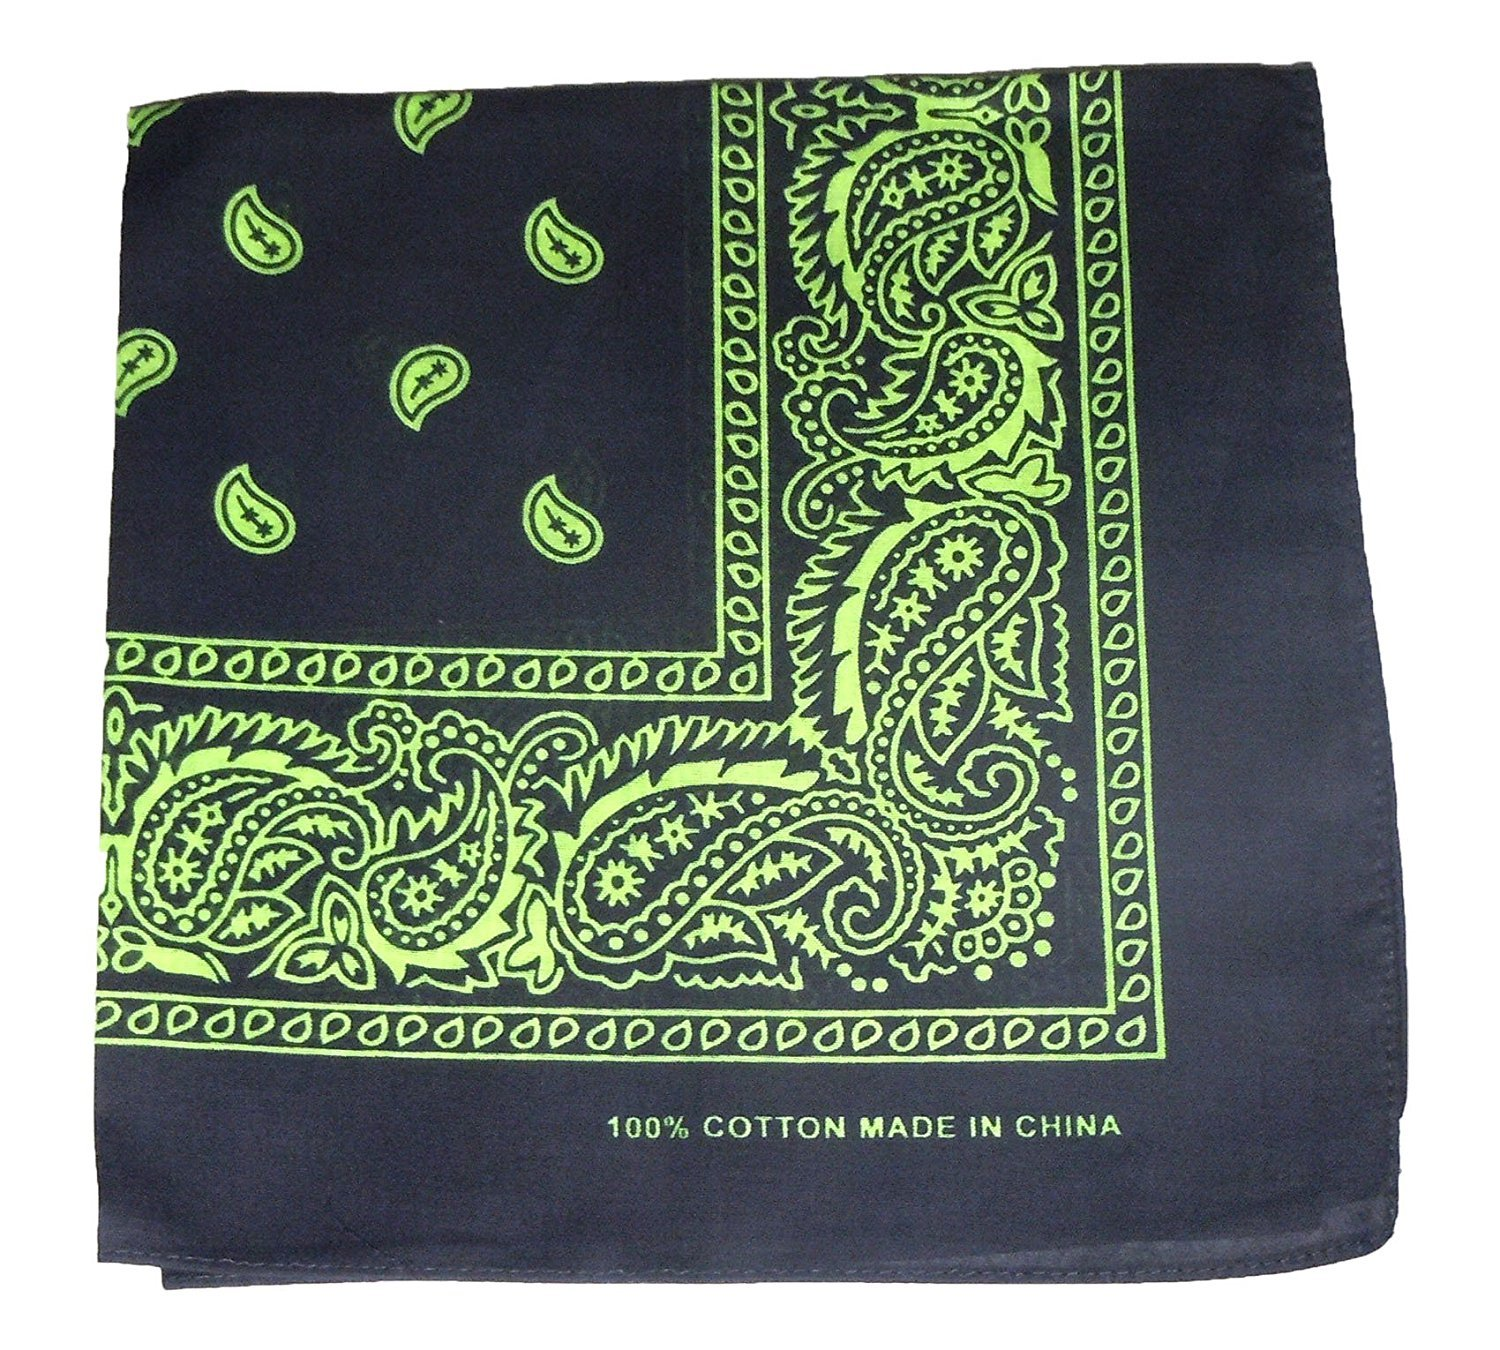 Bandanas By The Dozen 100% Cotton 12-Pack 22'' x 22'' - Paisley Black/Green